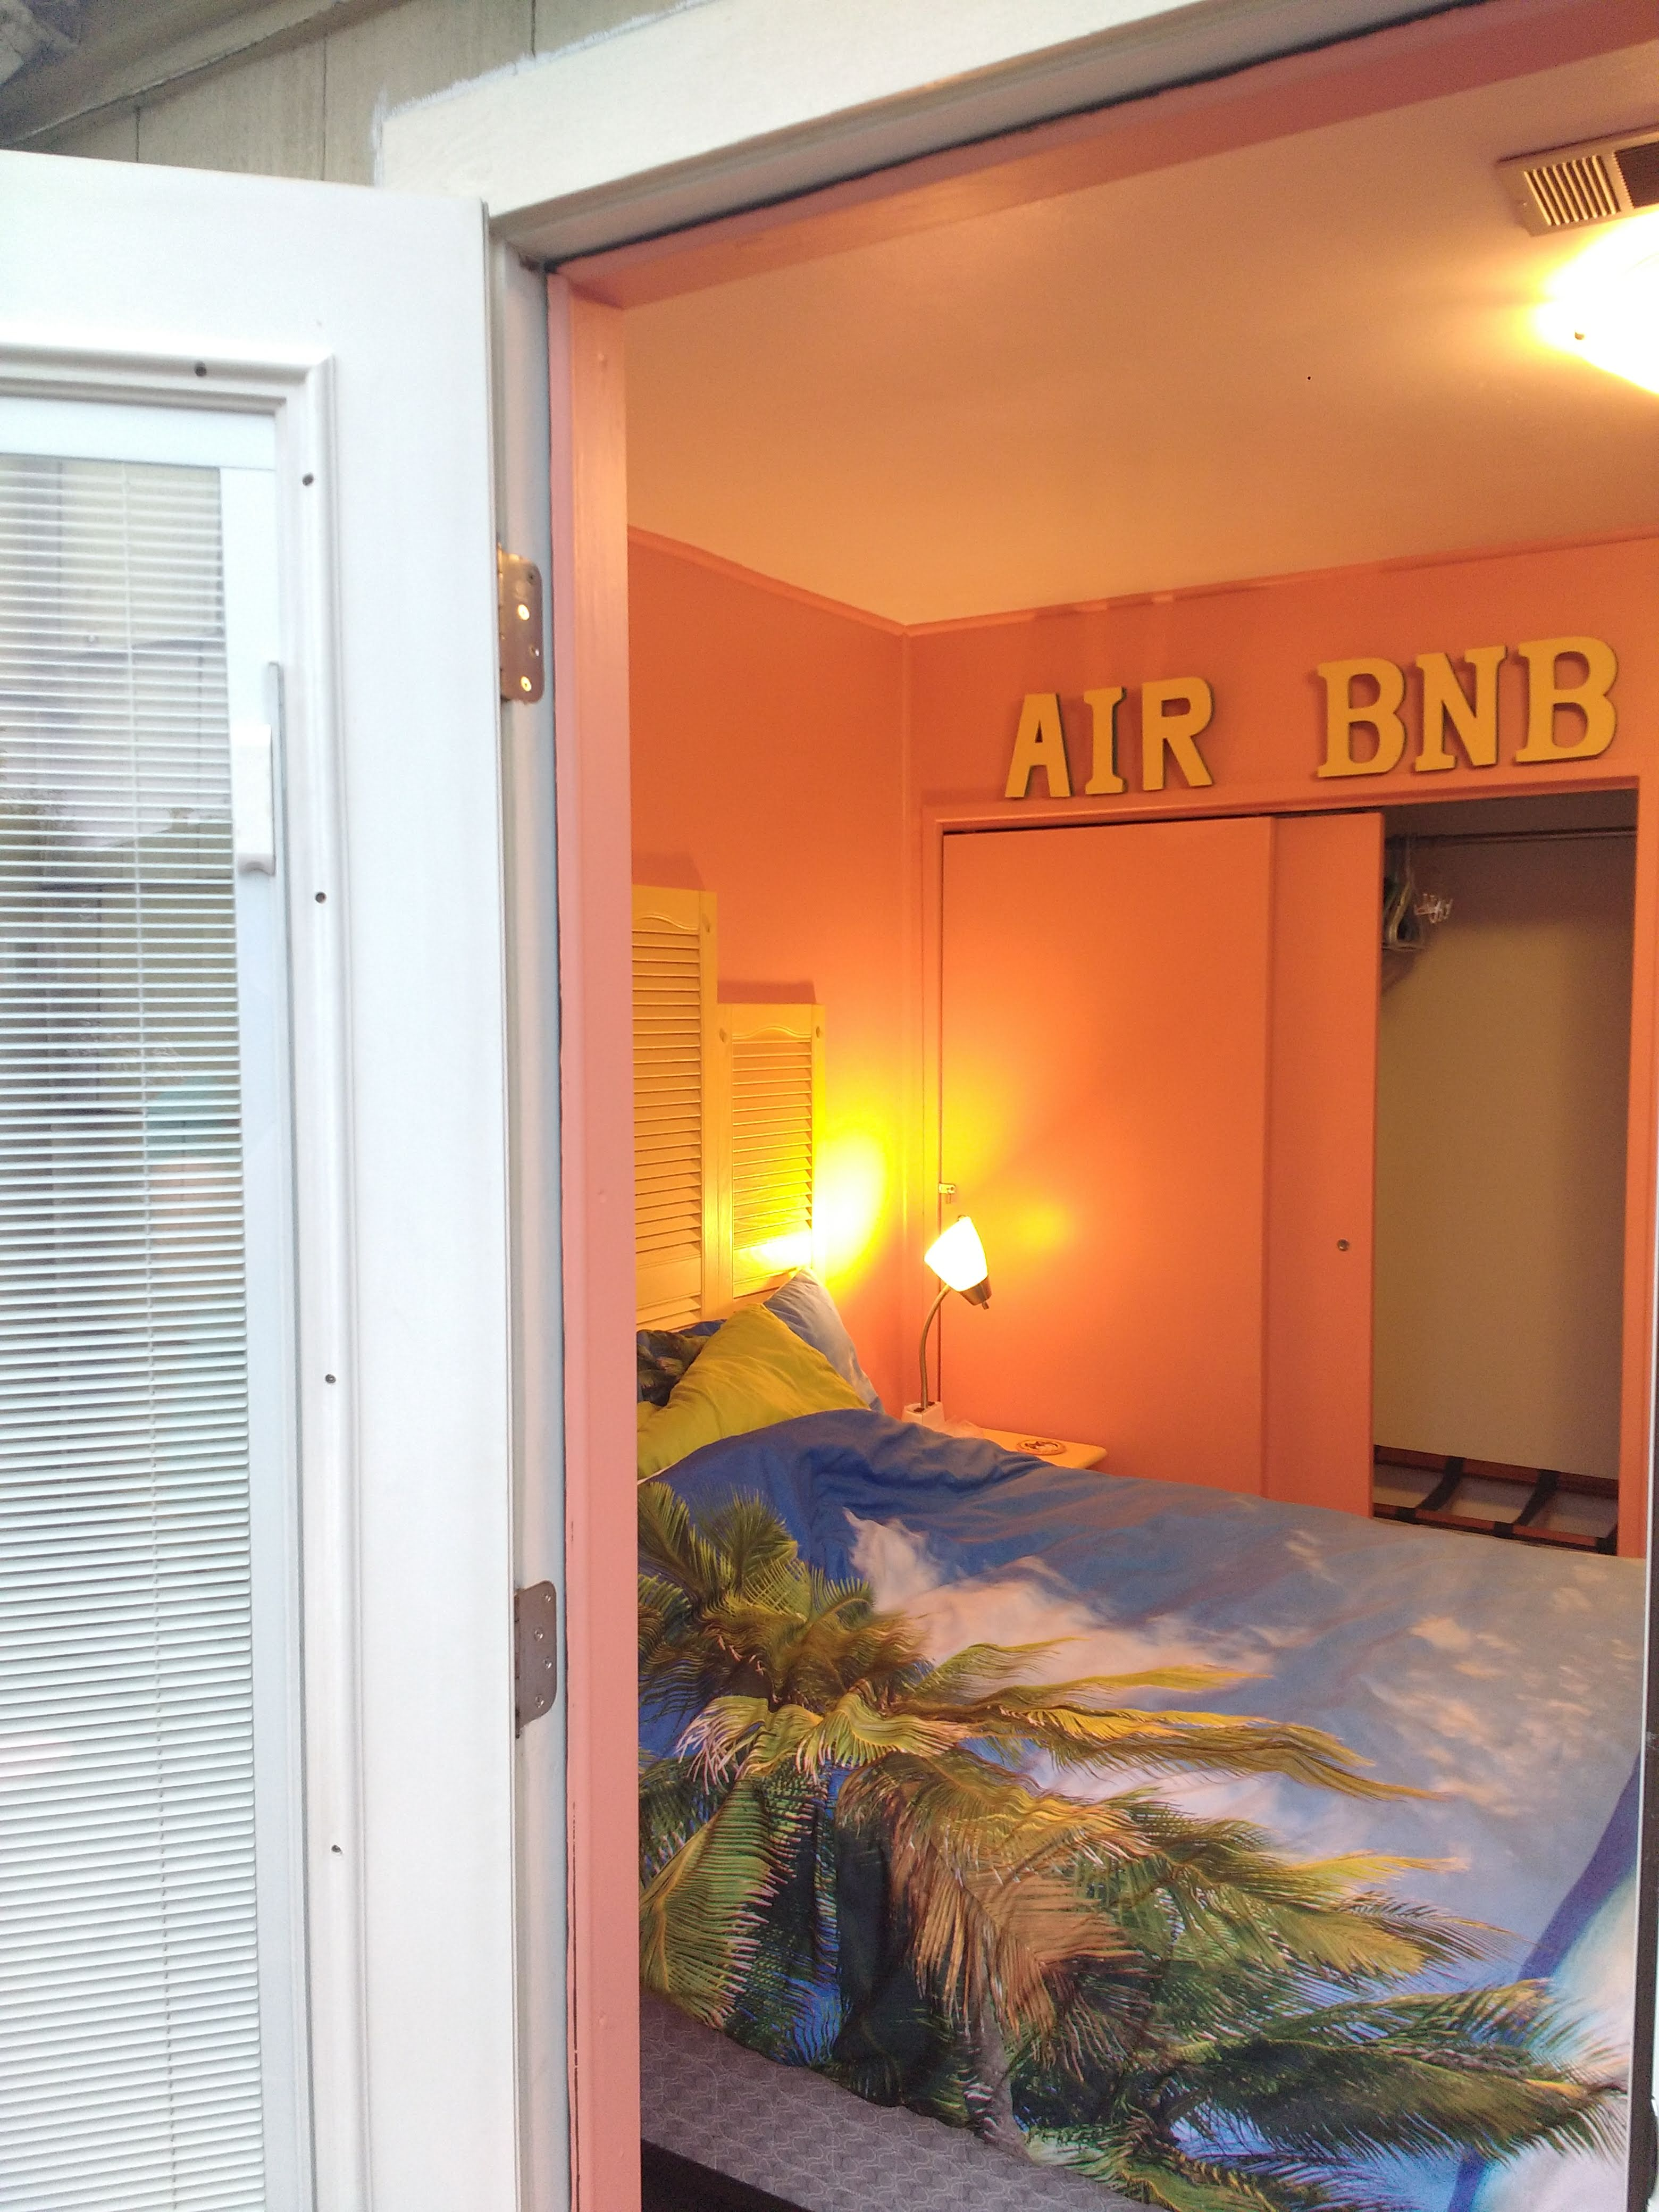 tiny travel chick incredible travel colorful corner airbnb sign